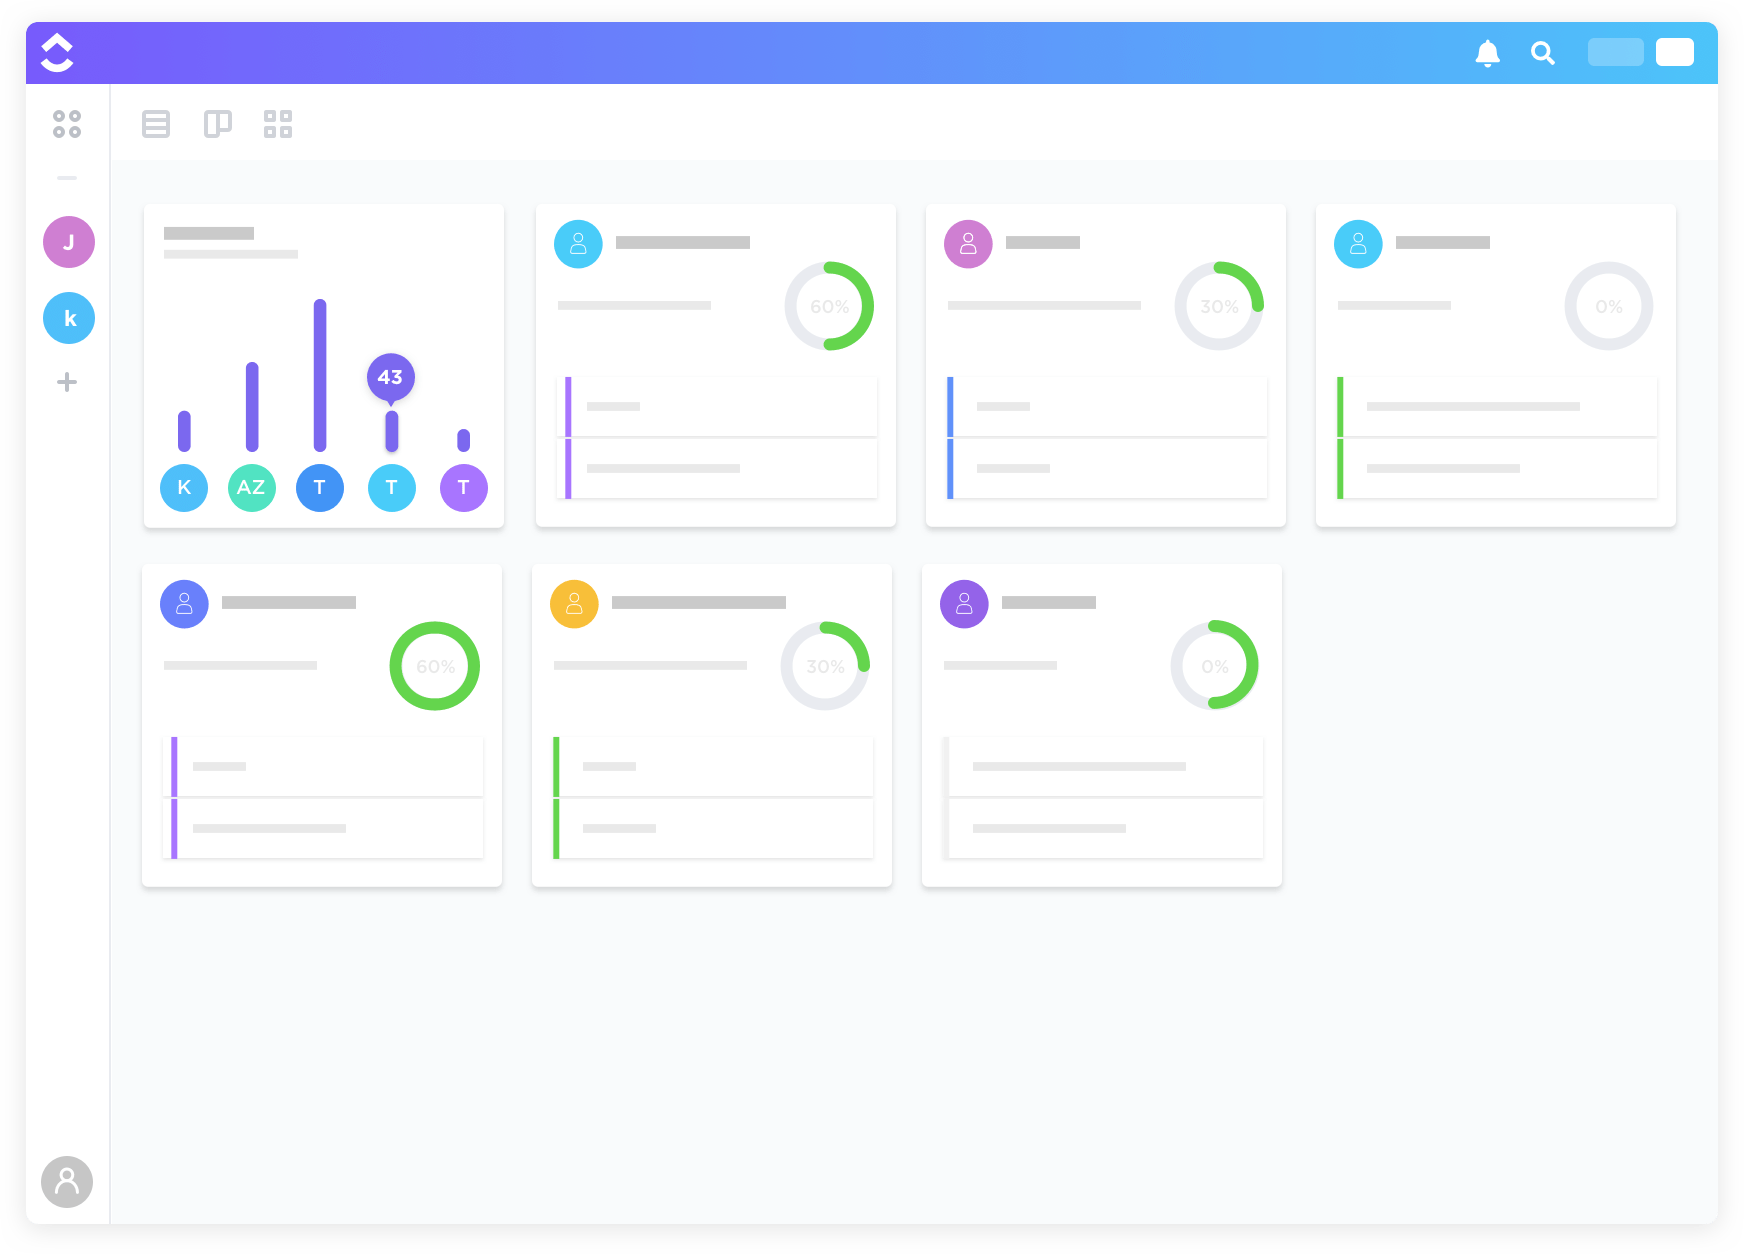 Box View 2.0 in ClickUp